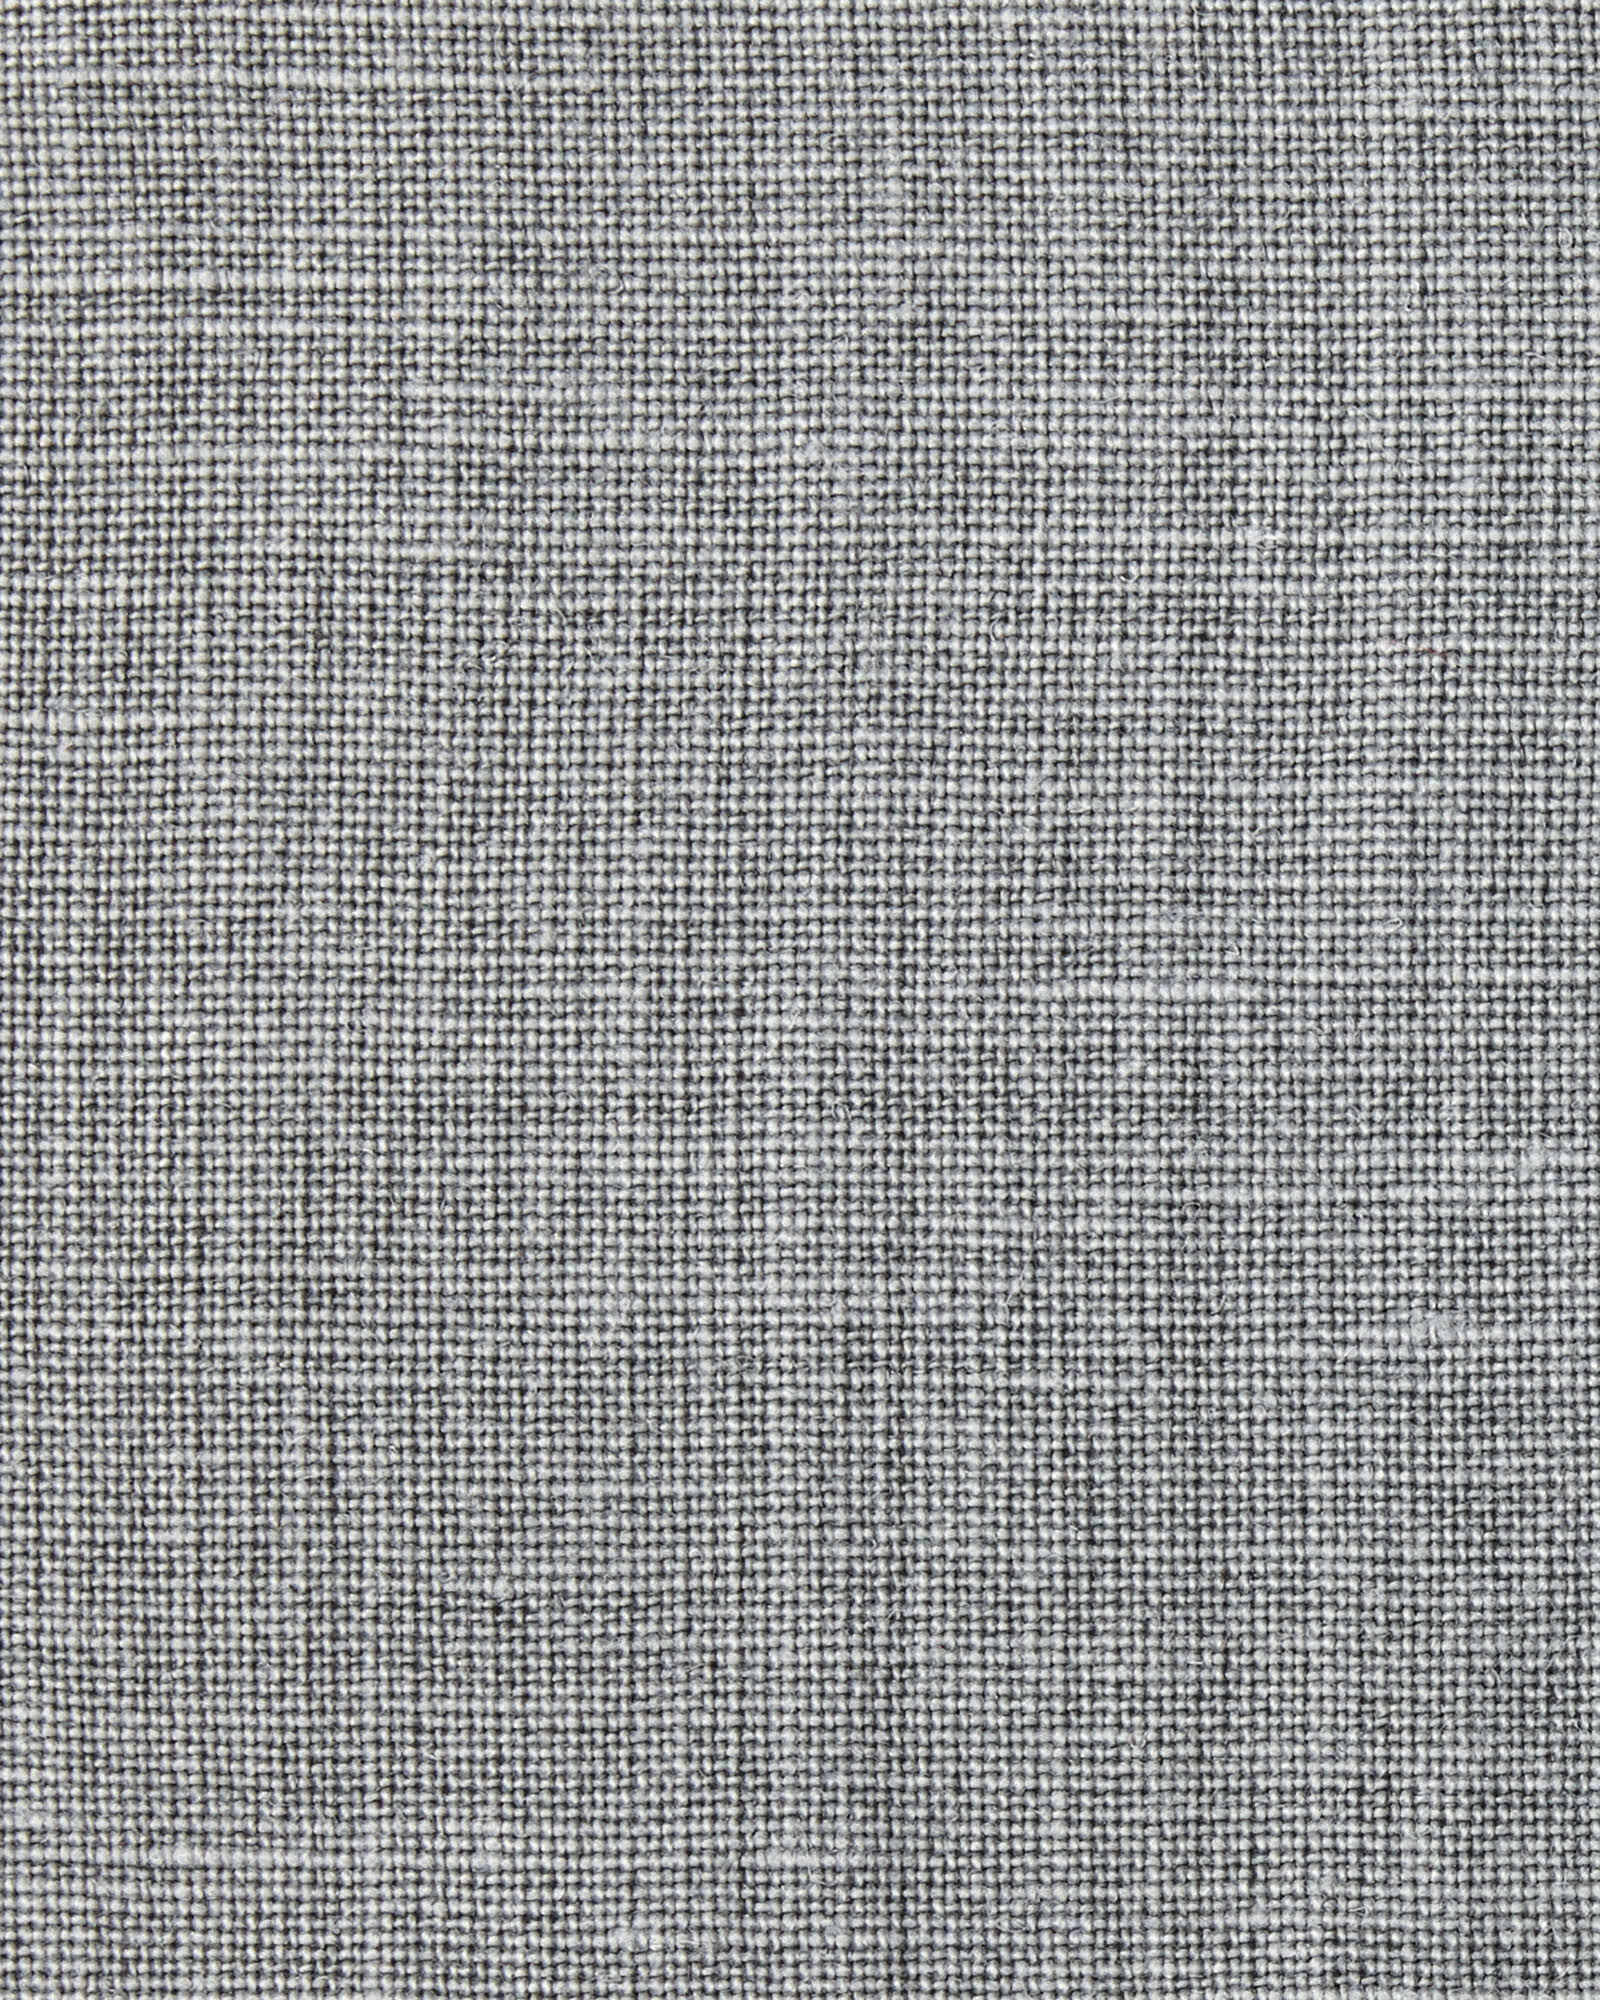 Washed Linen - Metal,